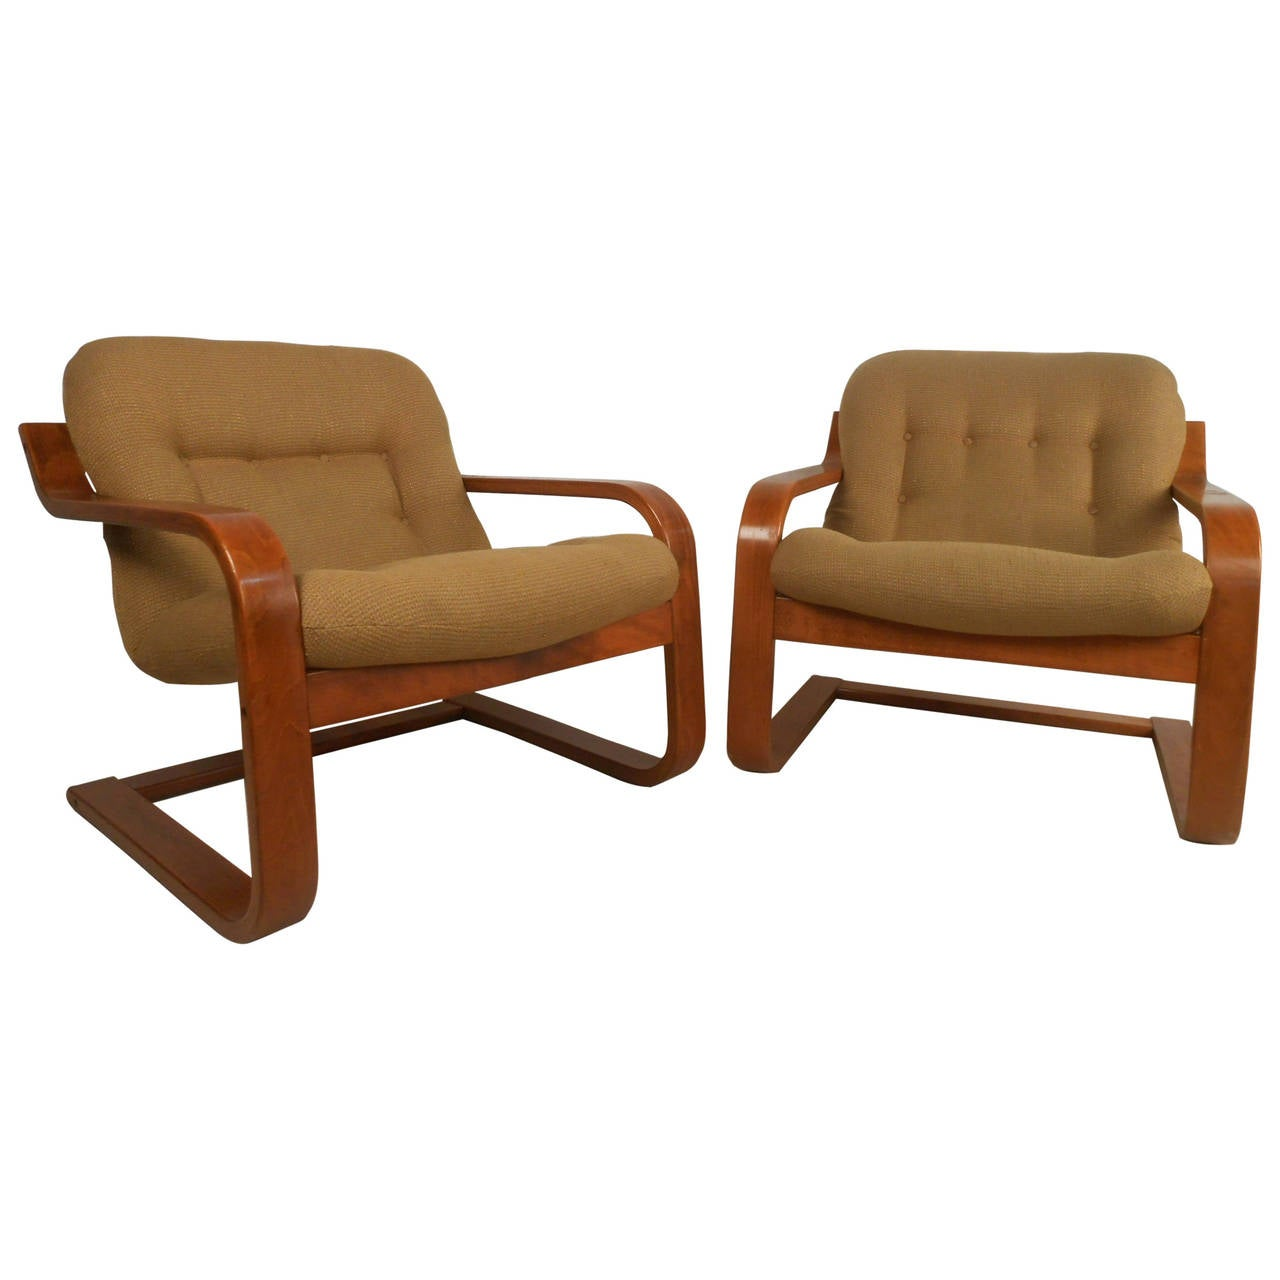 modern chairs folding chair effect pair of midcentury scandinavian westnofa bentwood